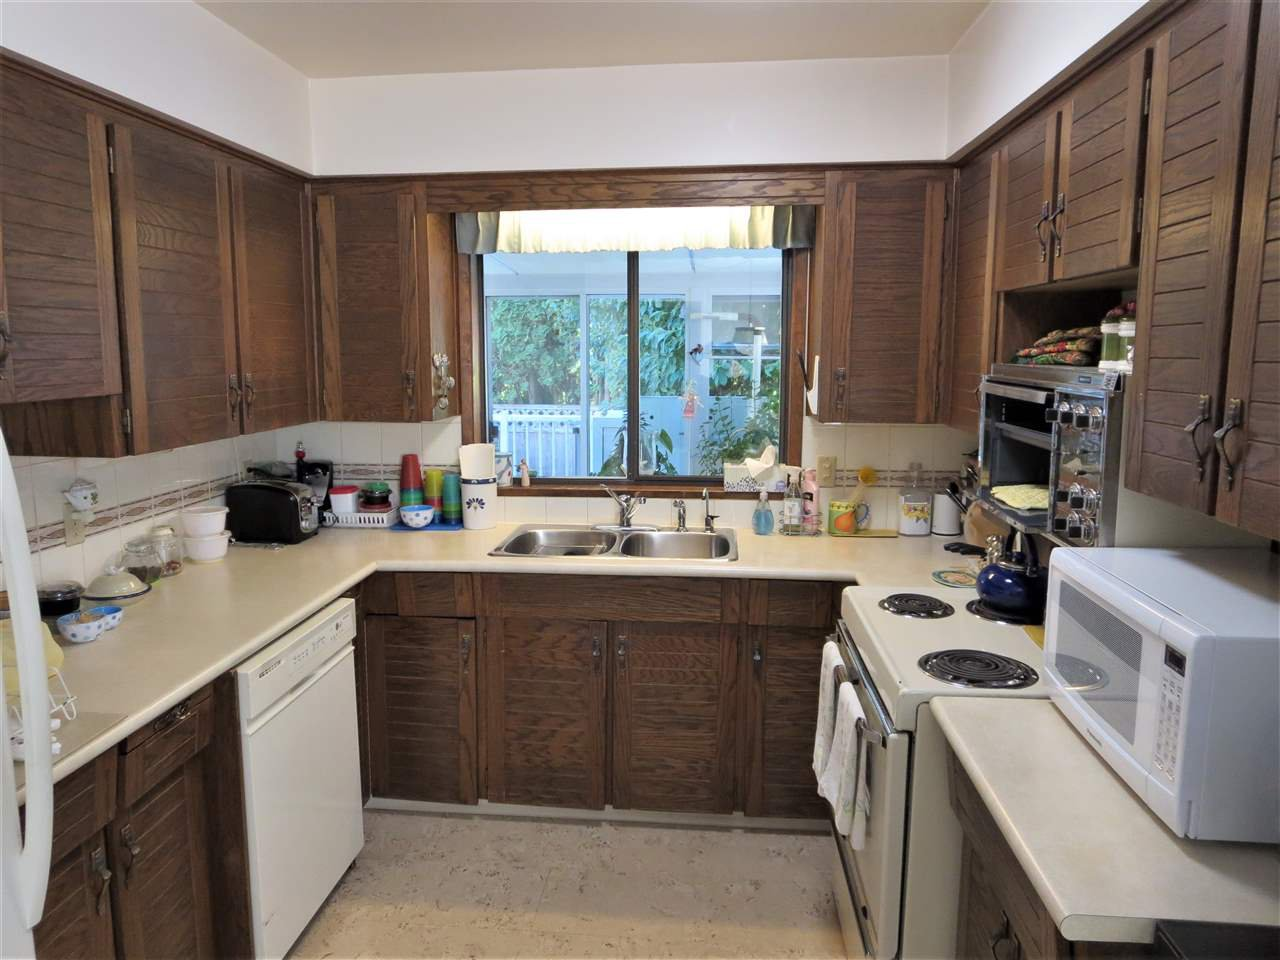 Photo 4: Photos: 10560 HOGARTH Drive in Richmond: Woodwards House for sale : MLS®# R2213924